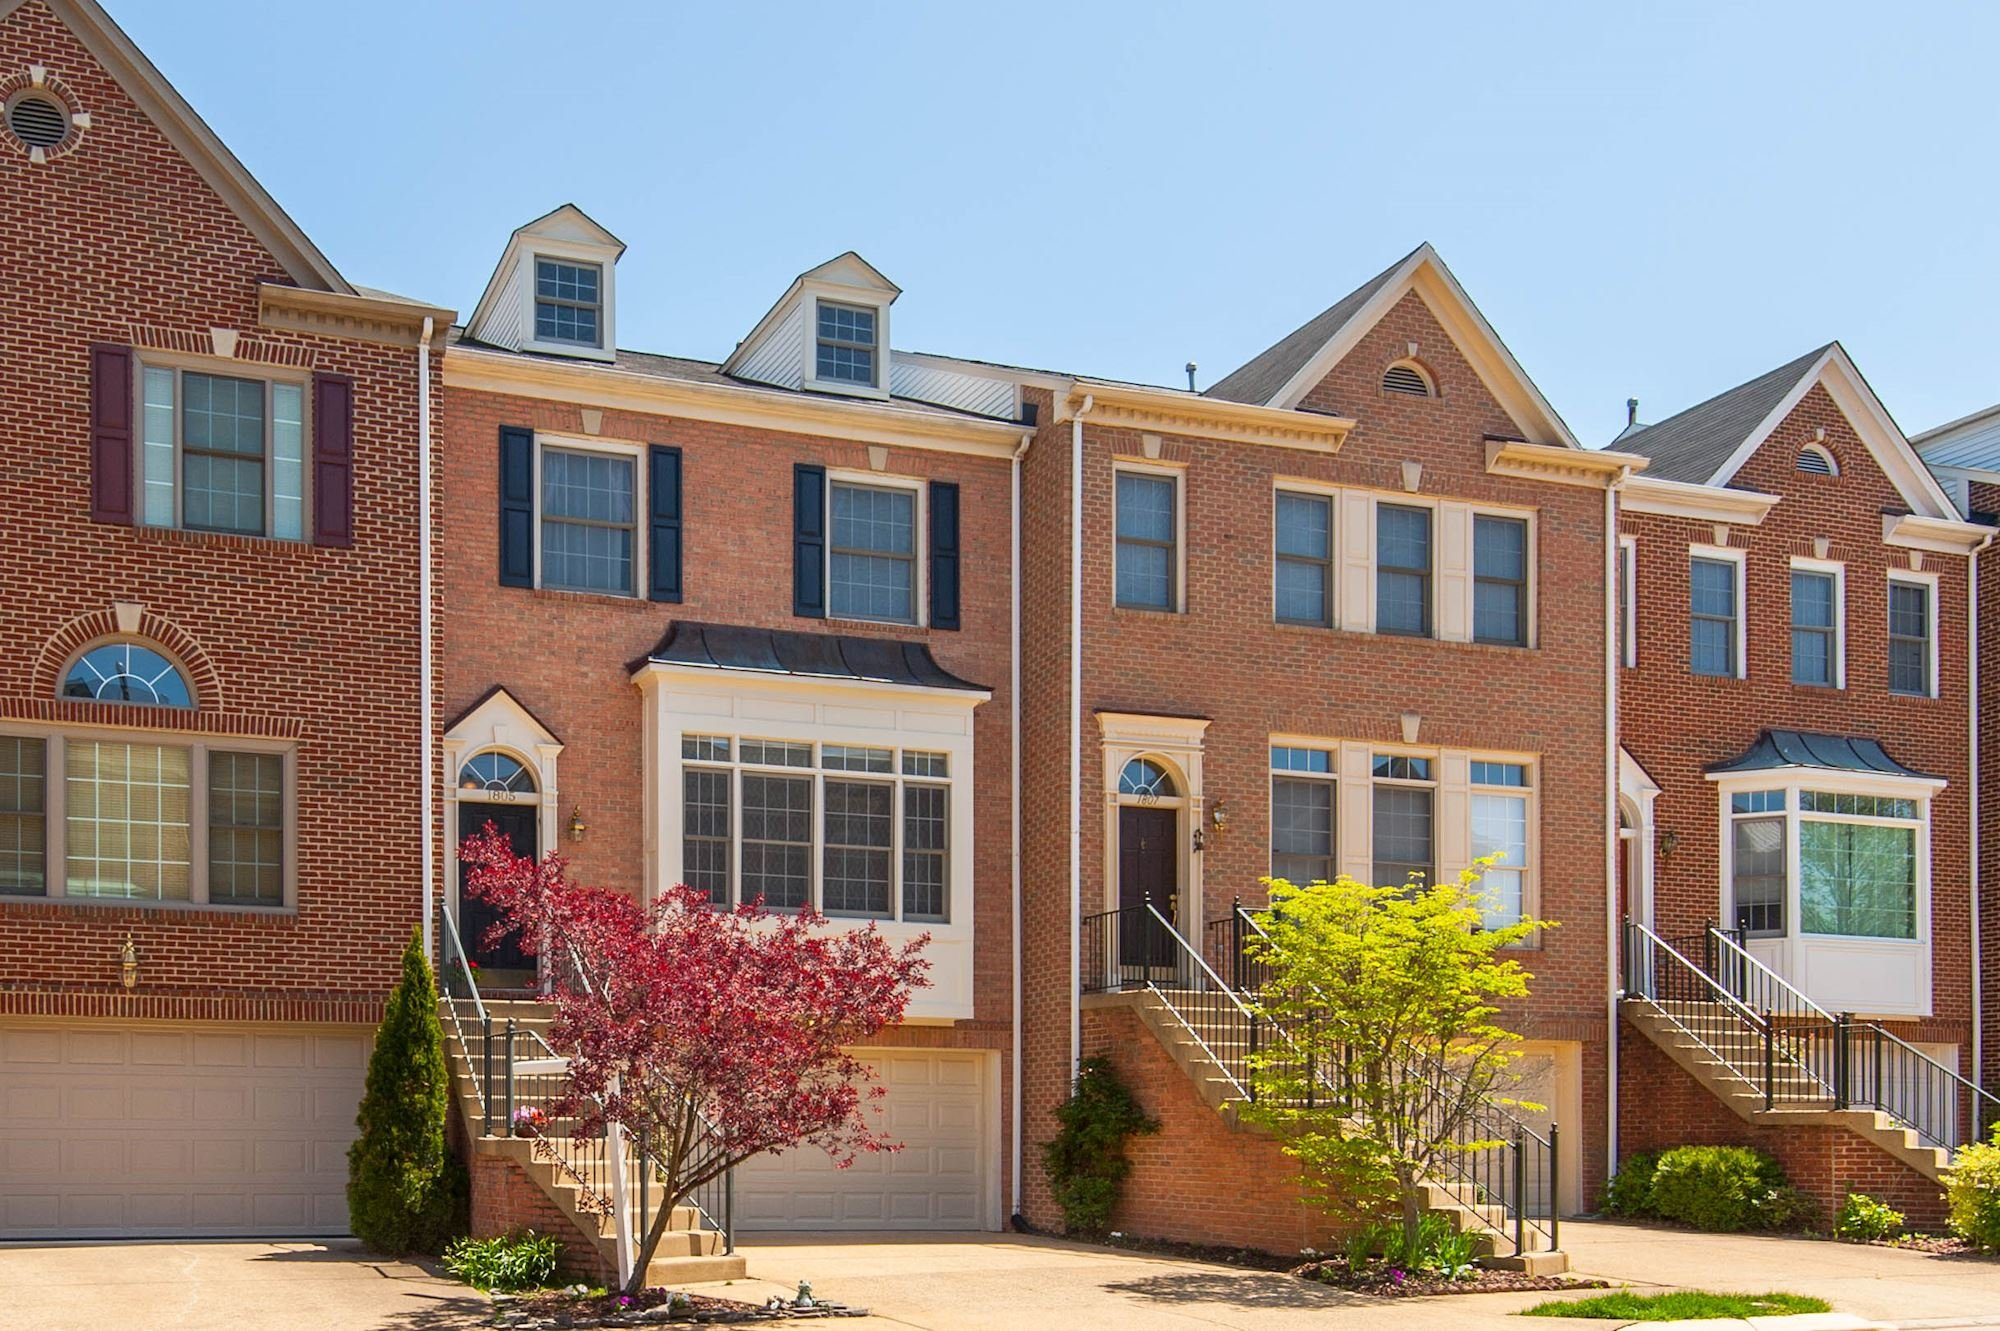 SOLD: 3 BD Townhome in Vienna